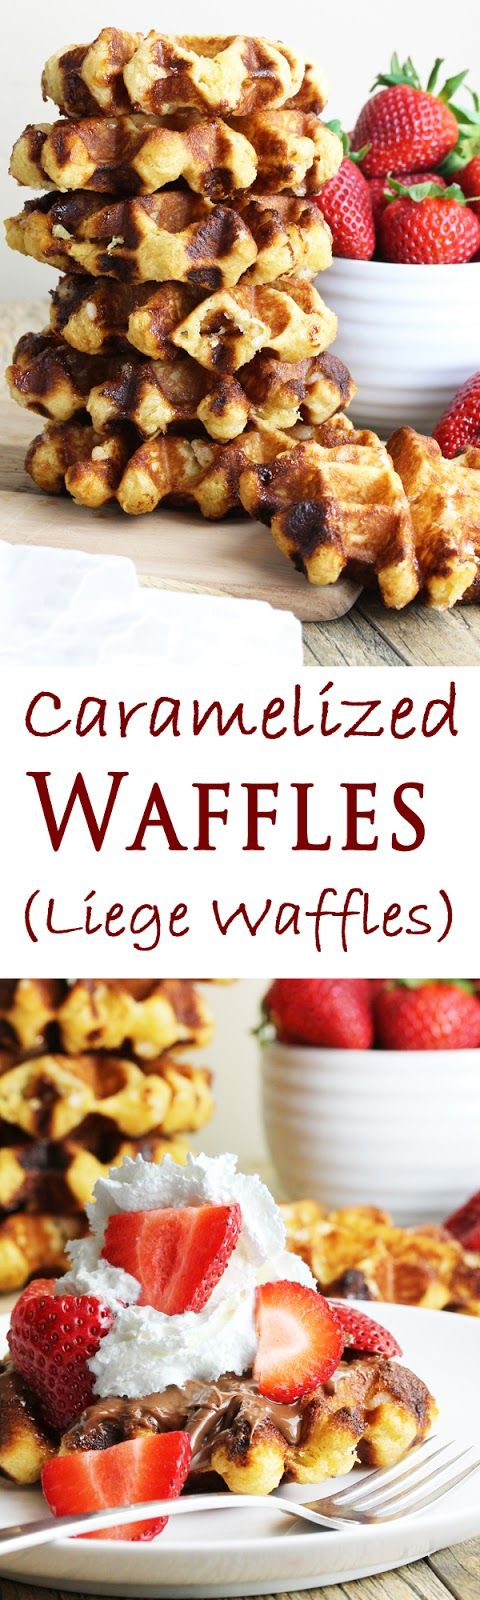 Caramelized Waffles (Liege Waffles). These waffles are caramelized on the outside, and chewy on the inside. Belgian pearl sugar is the key ingredient.